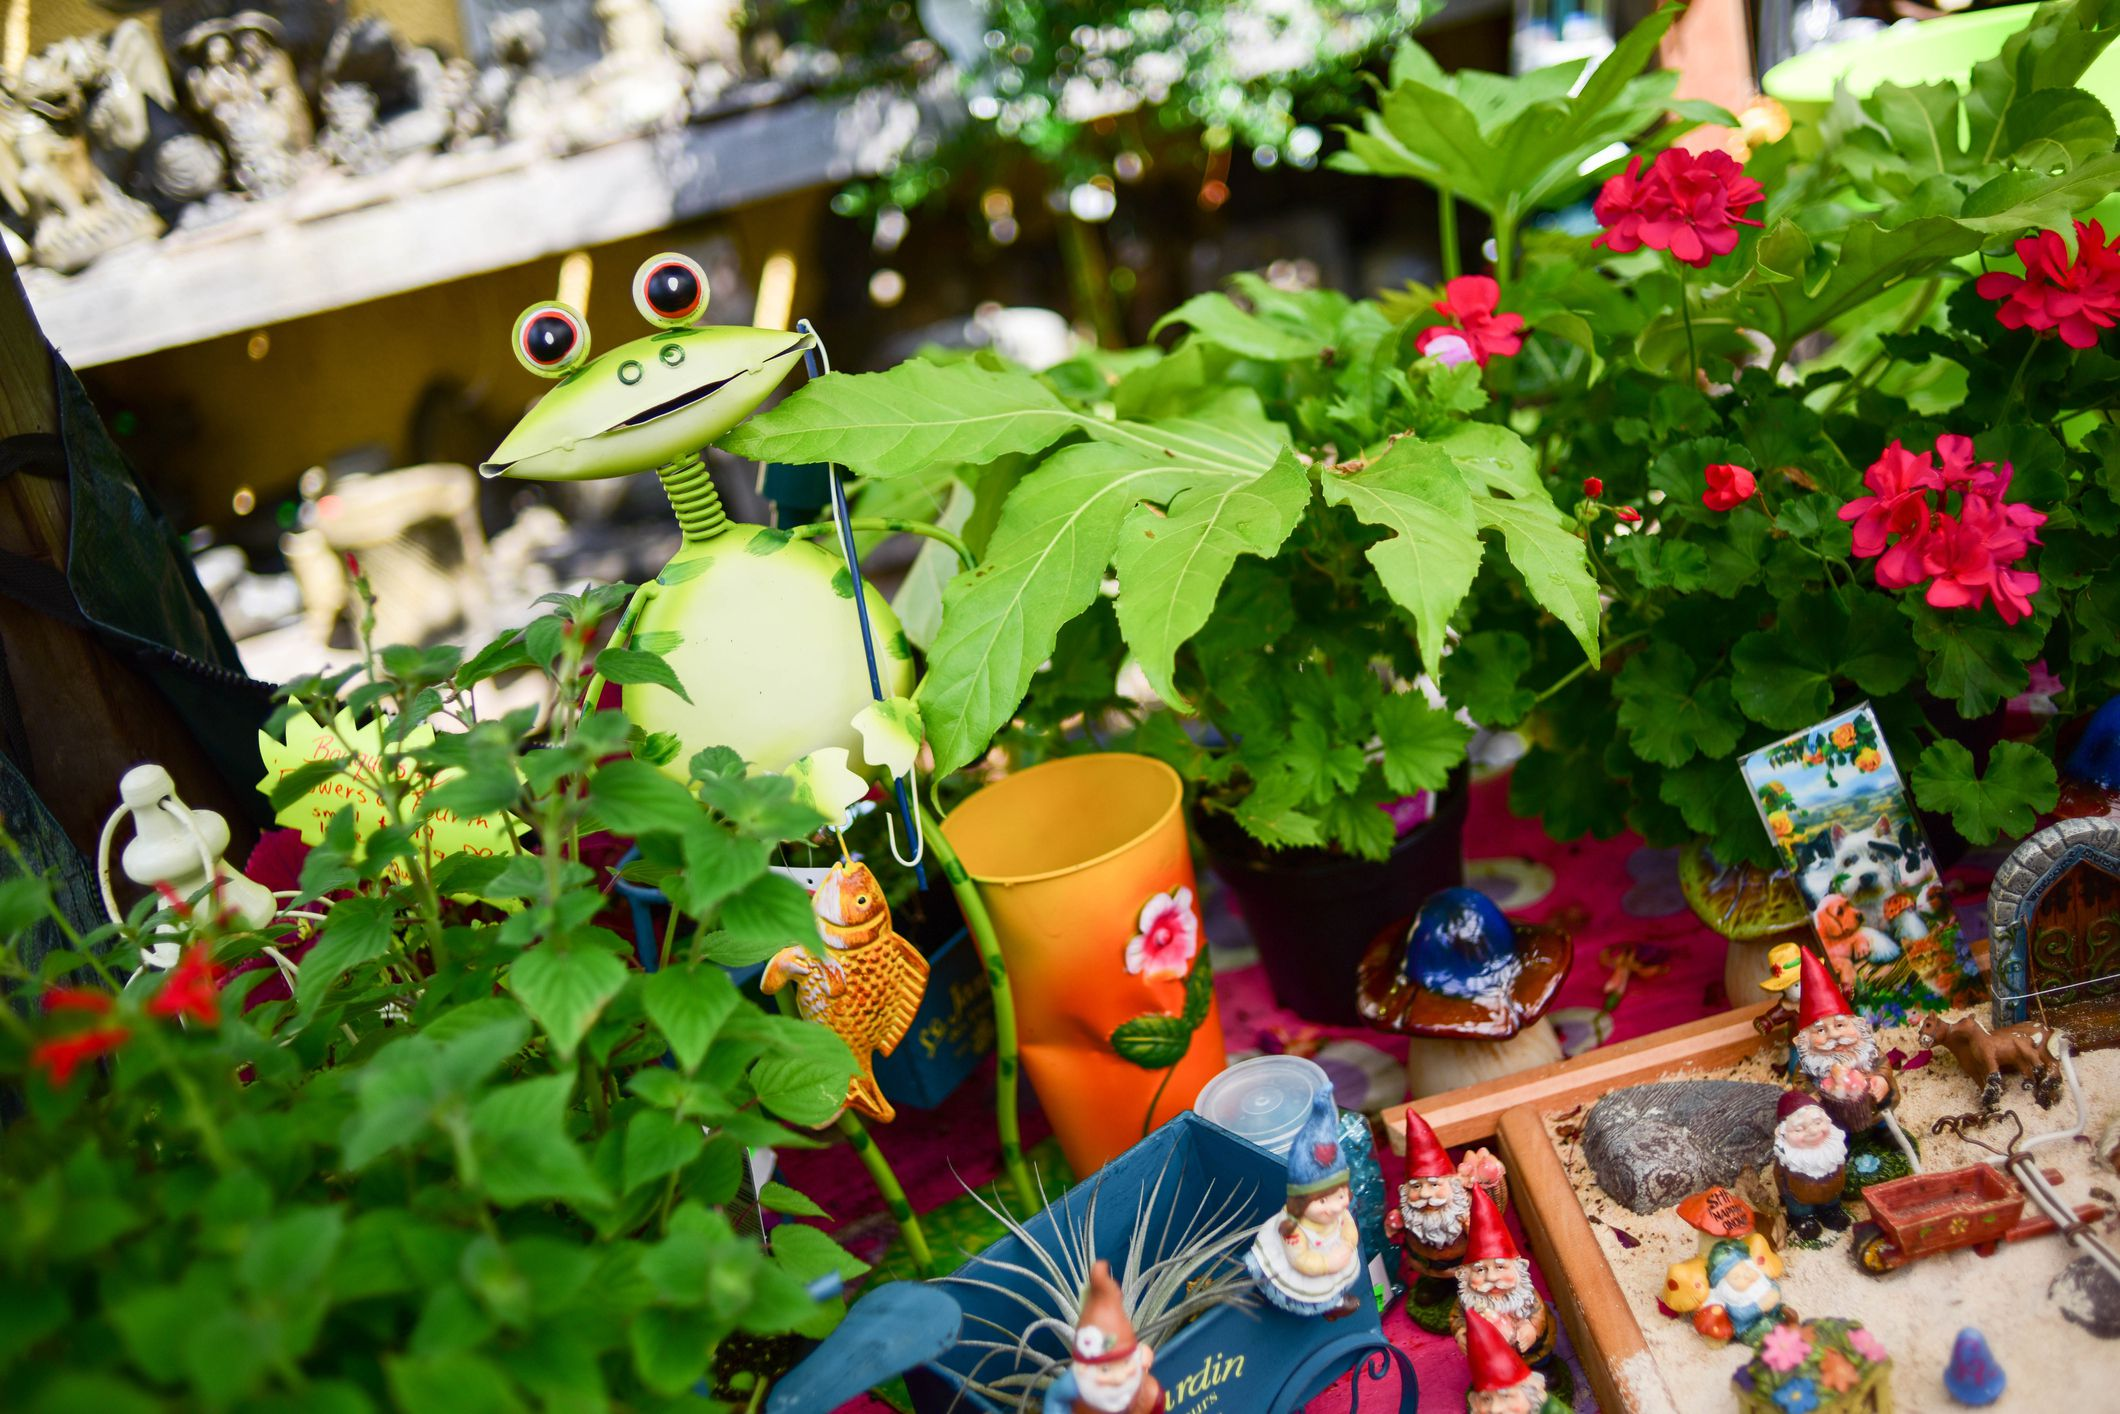 House Decorating Games For Adults Ideas For How To Make Your Own Fairy Garden